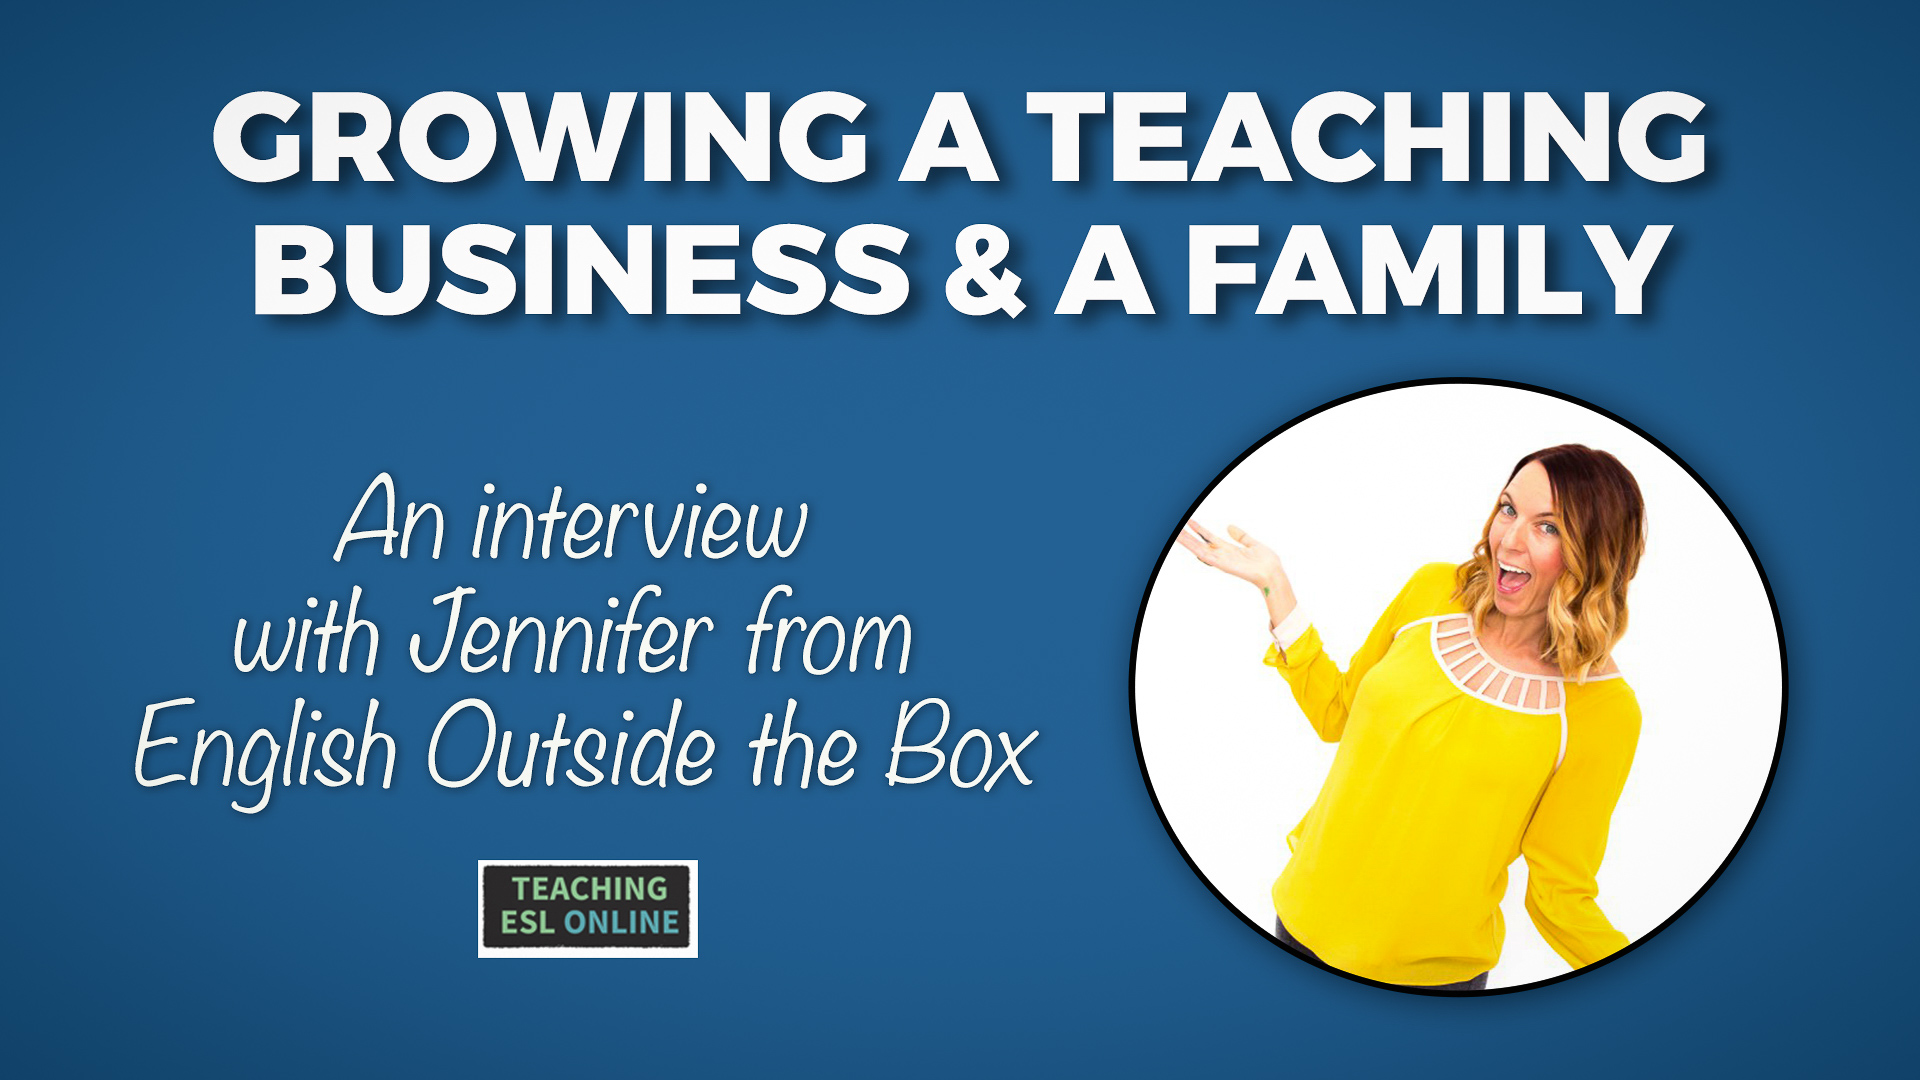 growing a teaching business and a family - jennifer-2